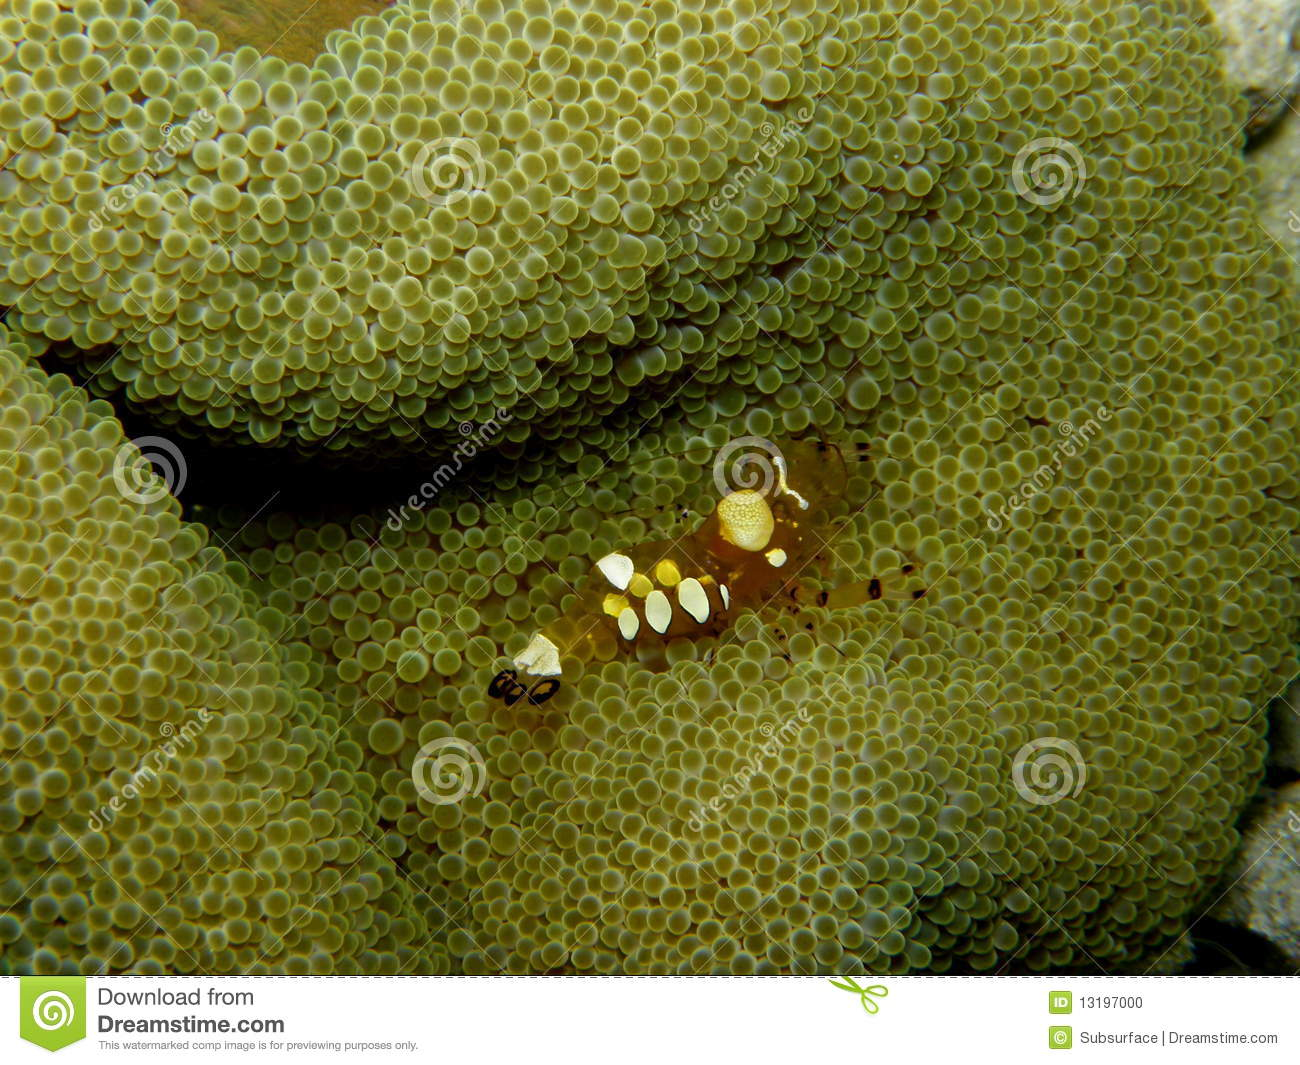 Clown Popcorn Photos Free Royalty Free Stock Photos From Dreamstime